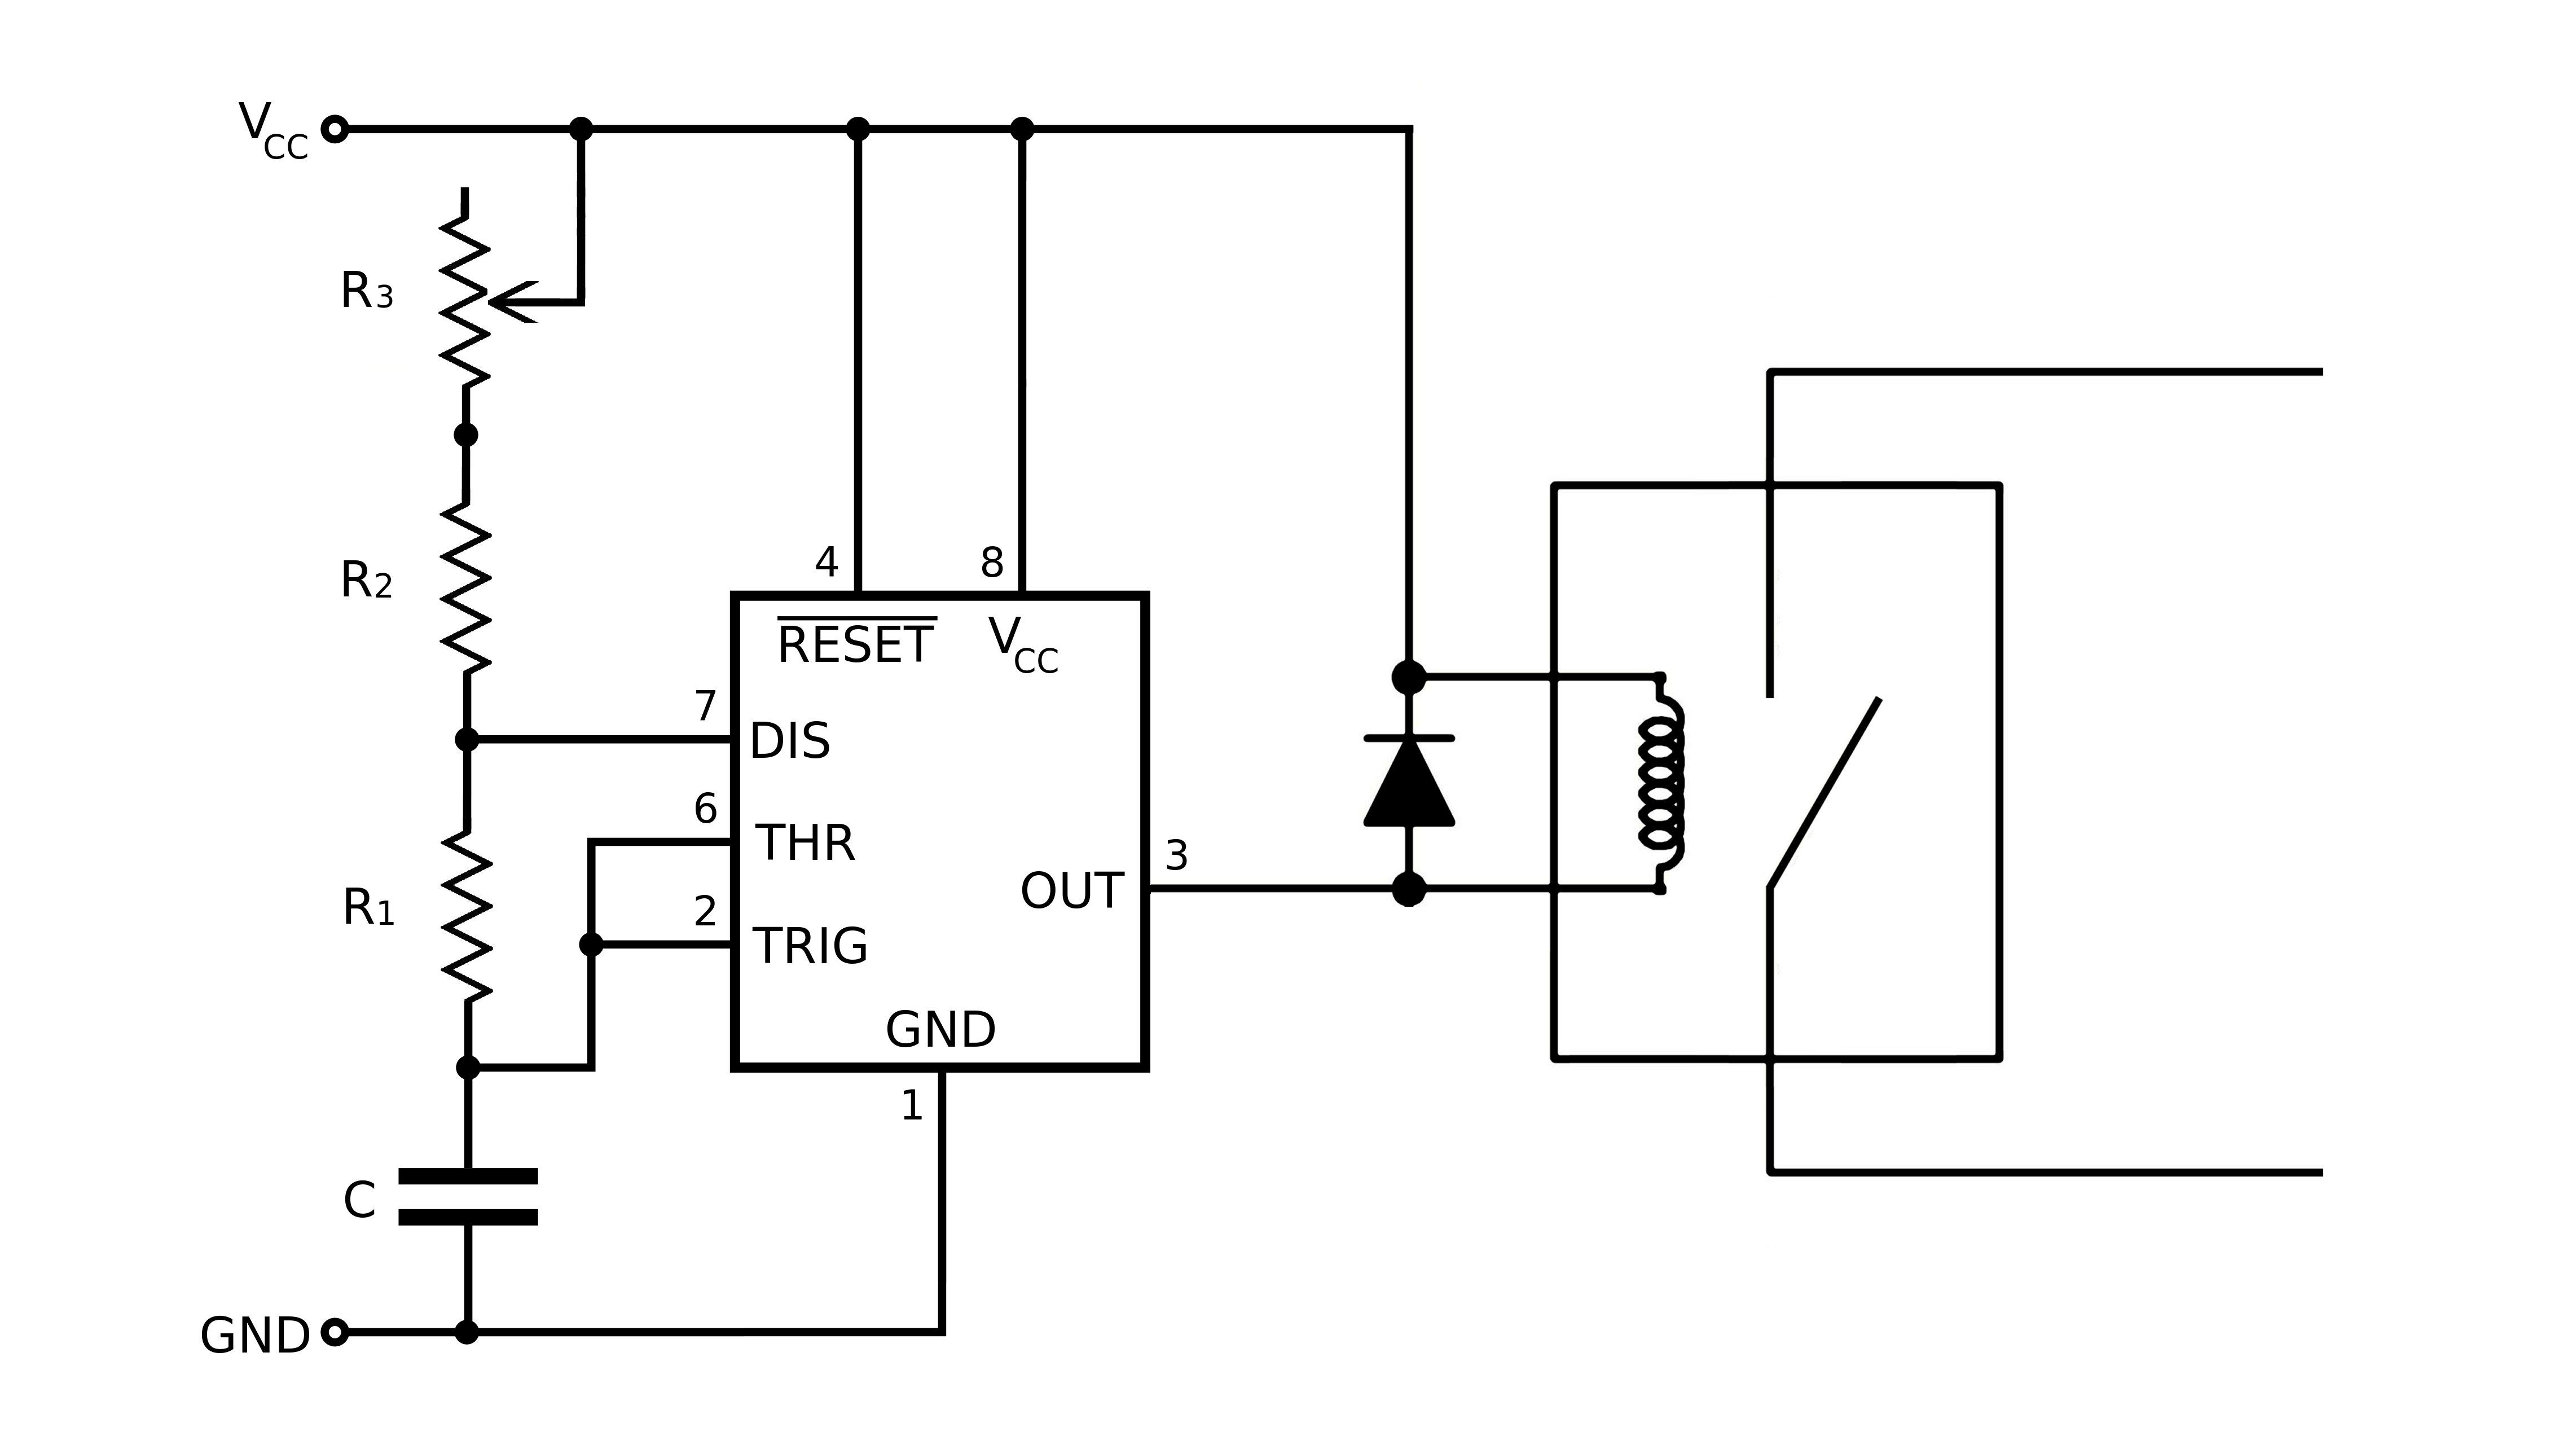 Dtmf Based Fm Remote Control Circuit Diagram Centre Adjustable For Heating Elements Electronics